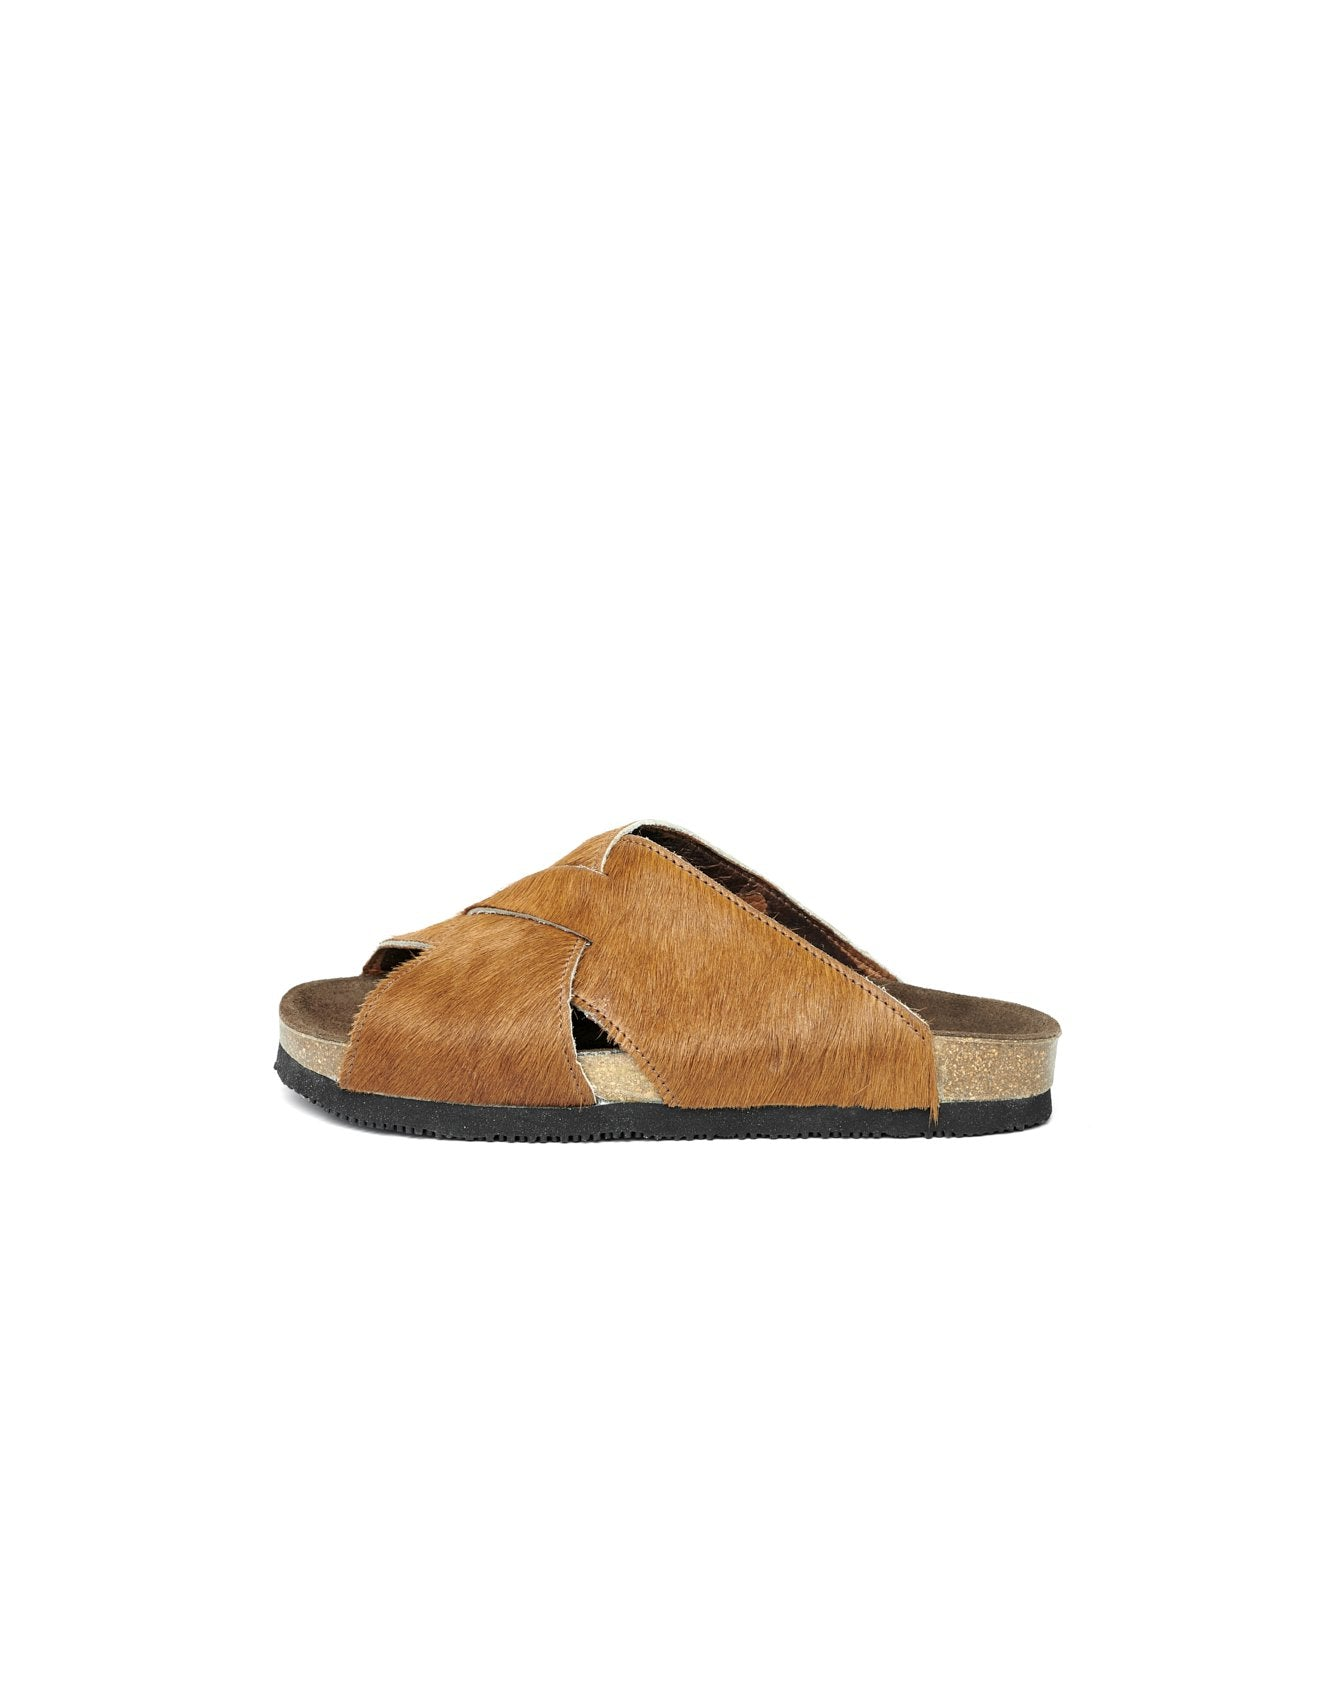 BOSABO | LEATHER SANDALS